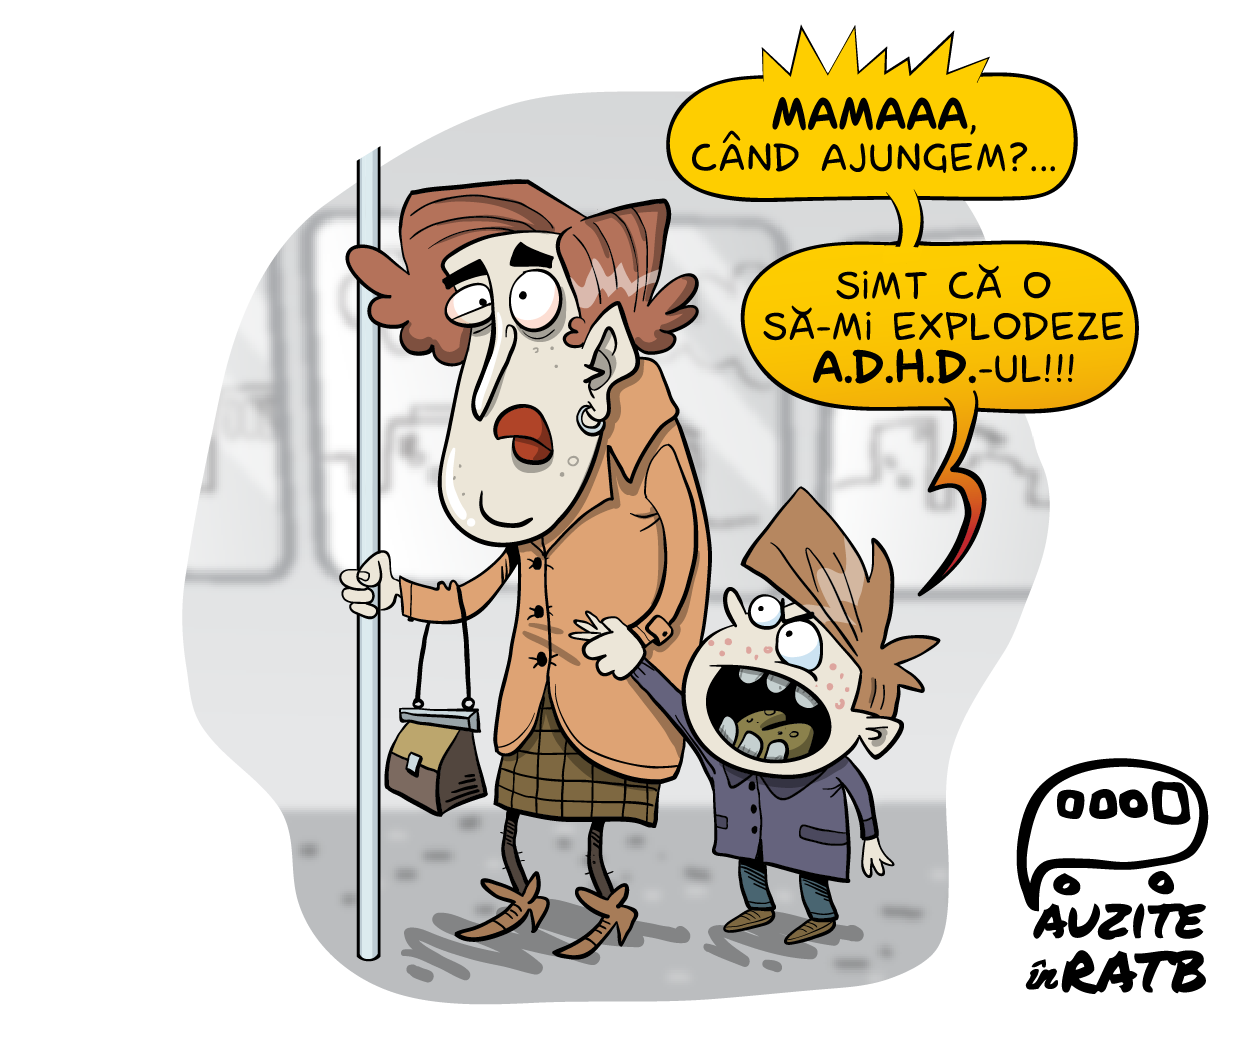 webcomic: Auzite in RATB